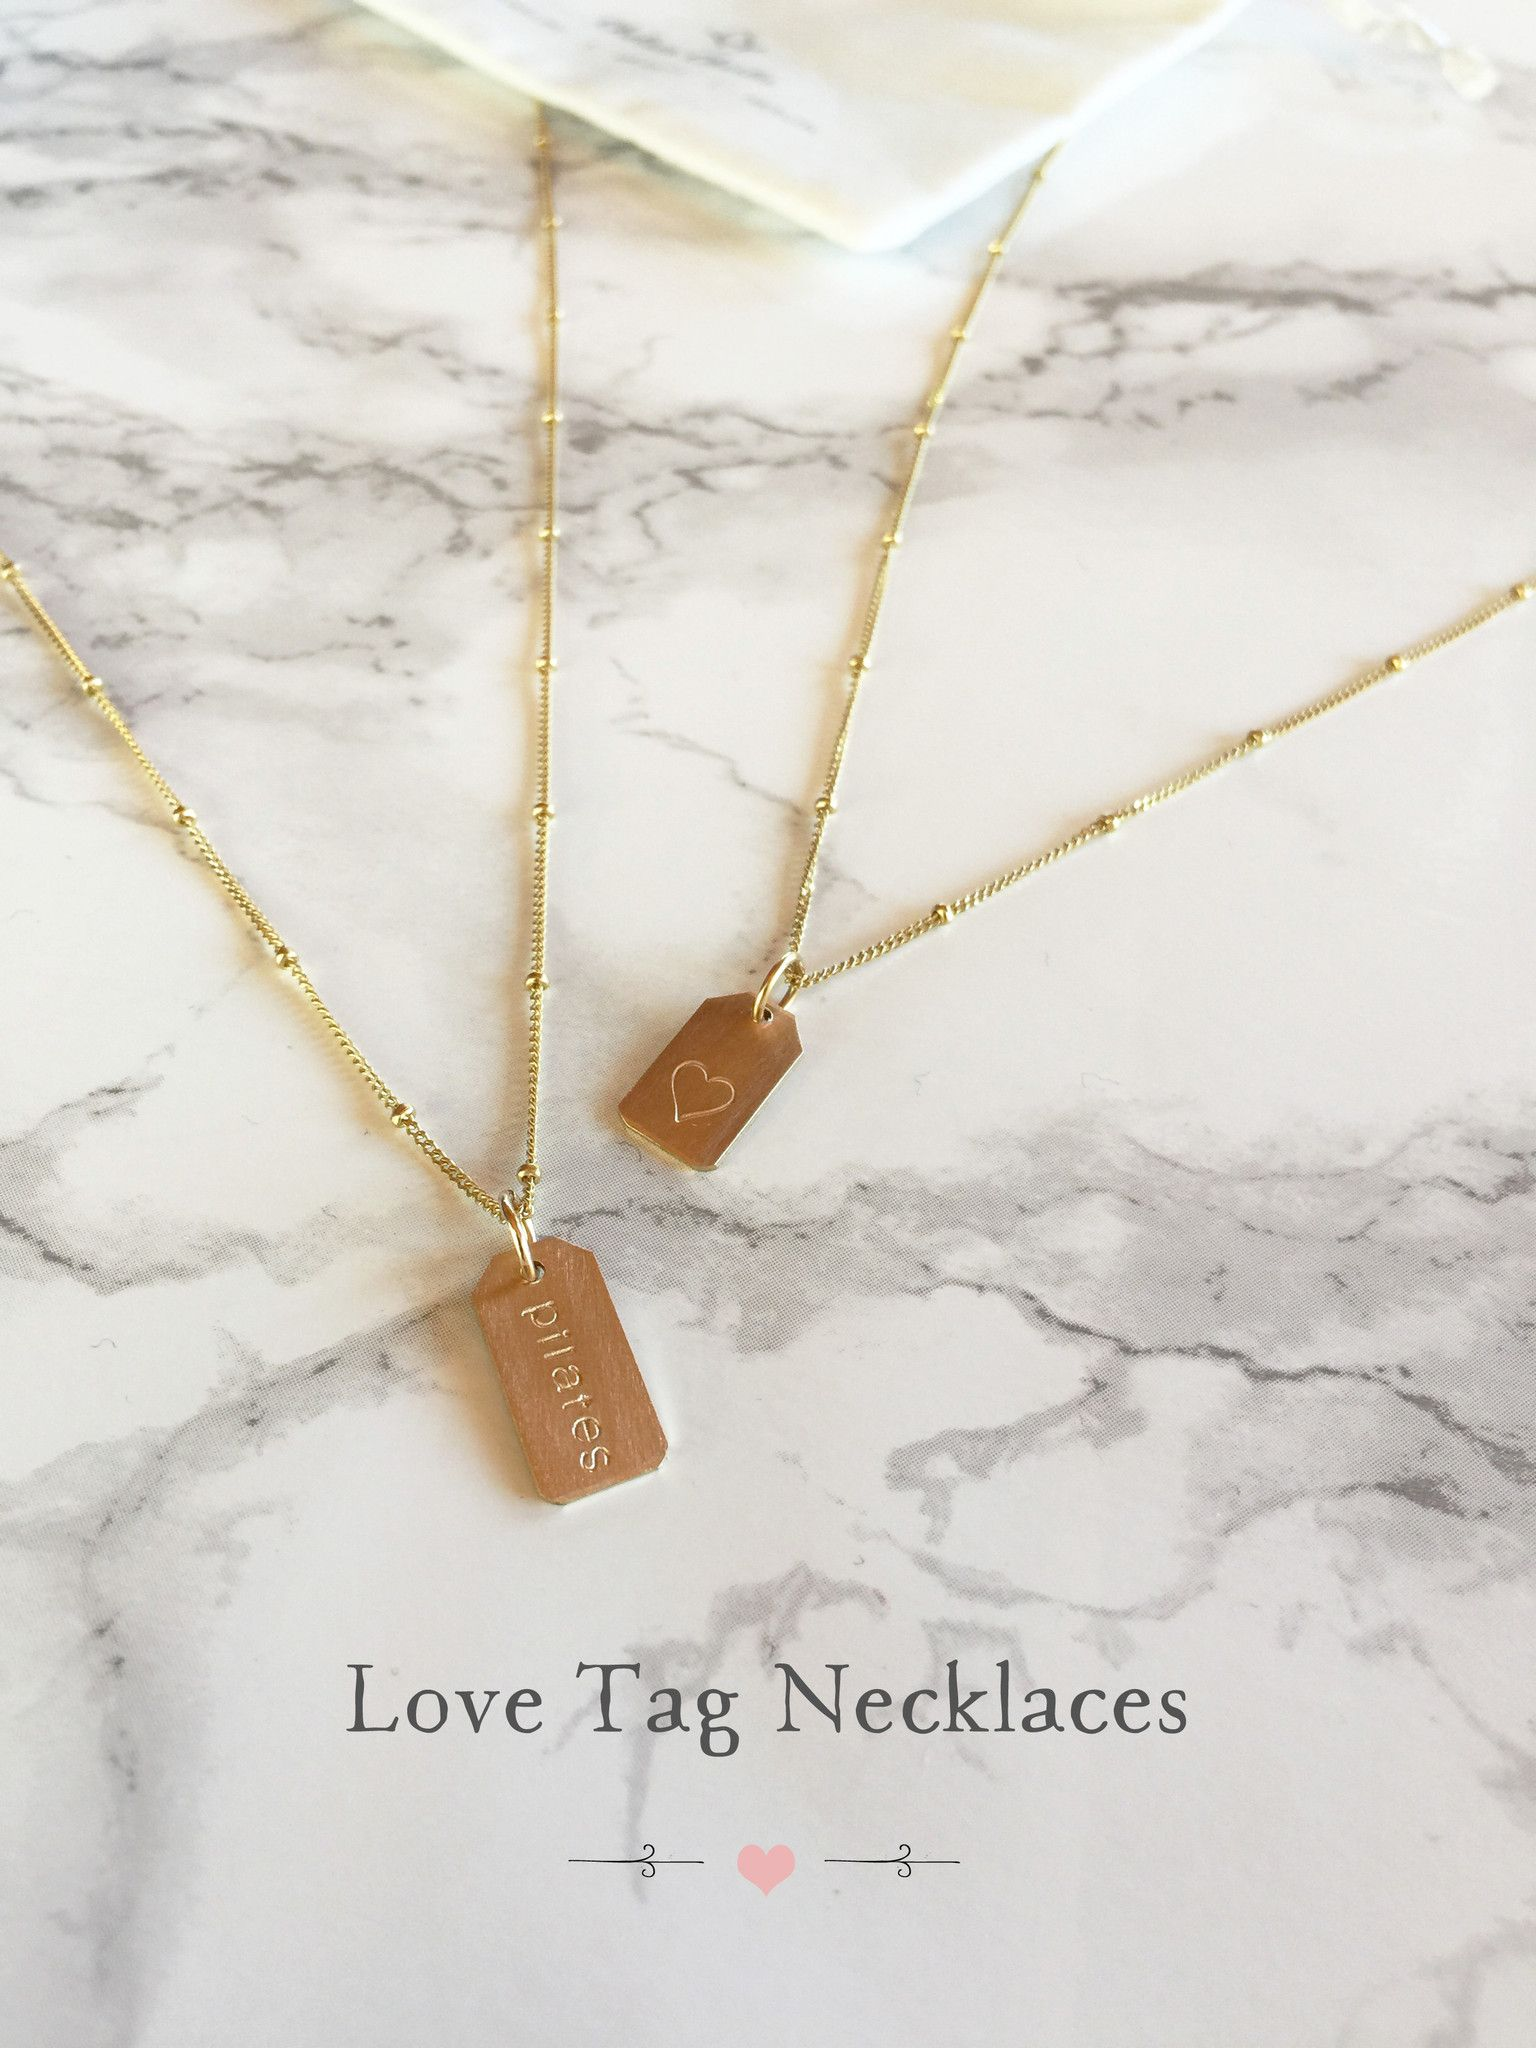 Chelsea Charles Love Tag Necklaces in 14k gold and silver Twosided